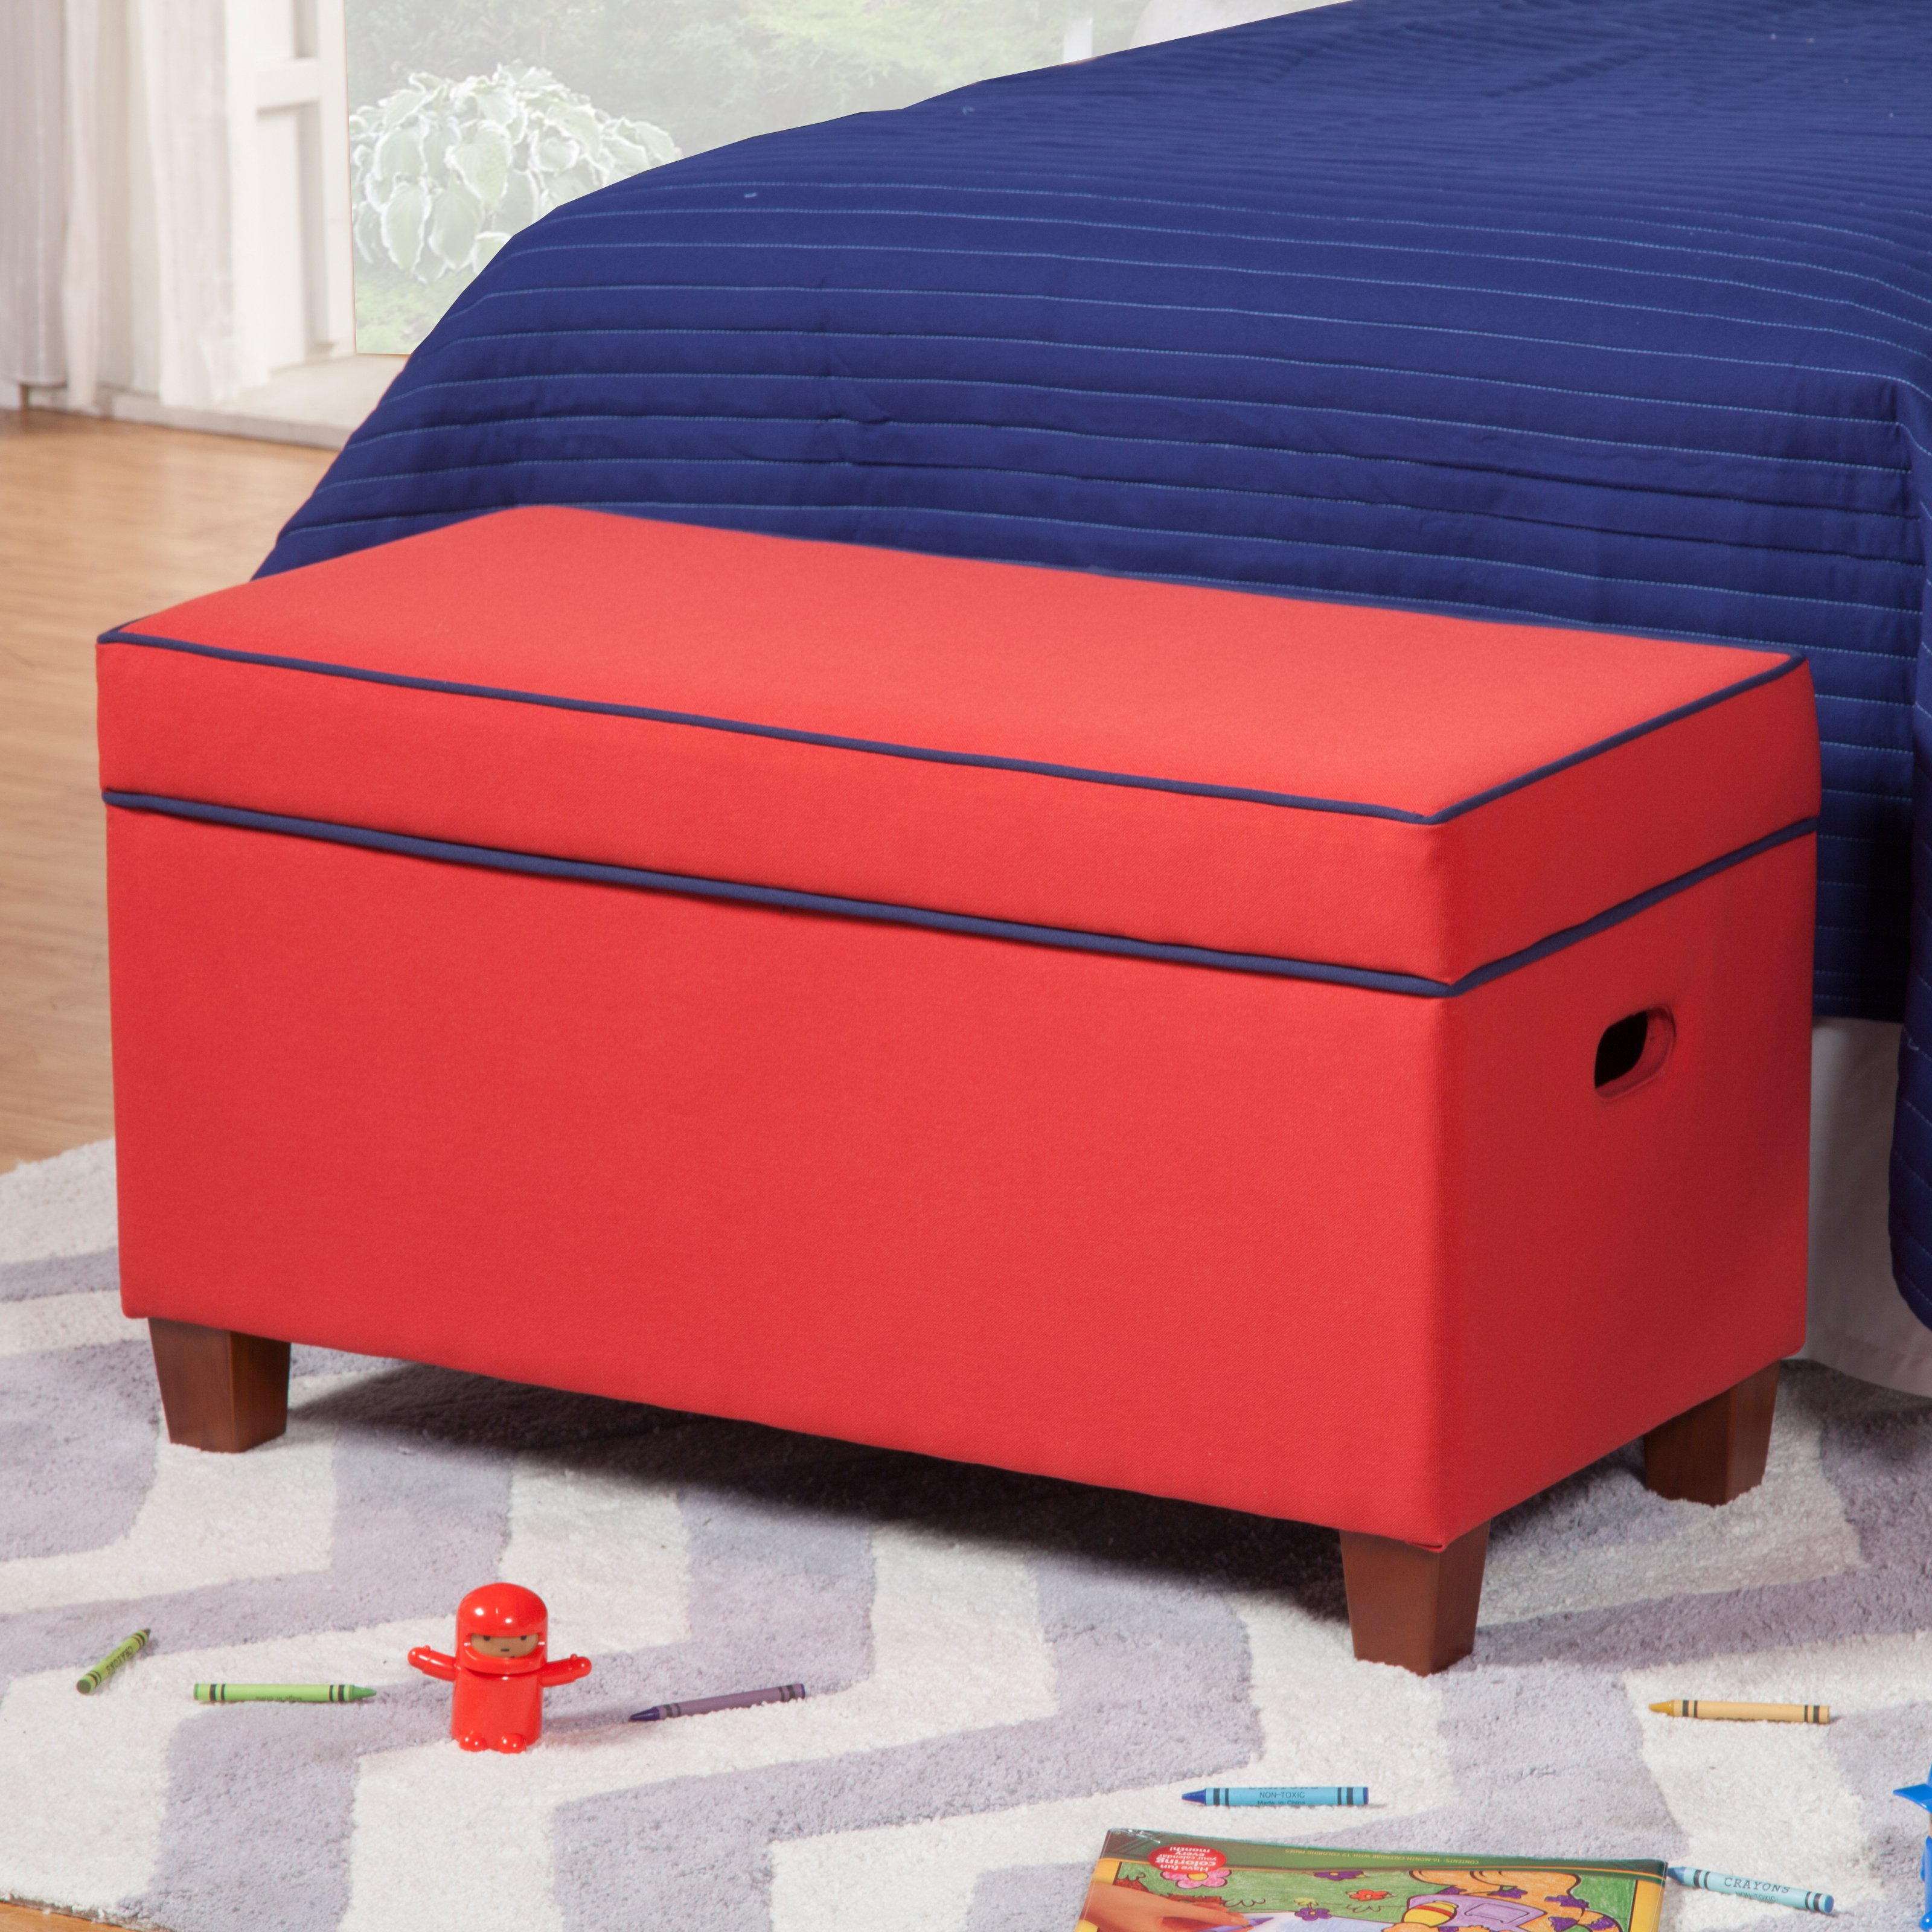 Kinfine Upholstered Kids Storage Bench - Red